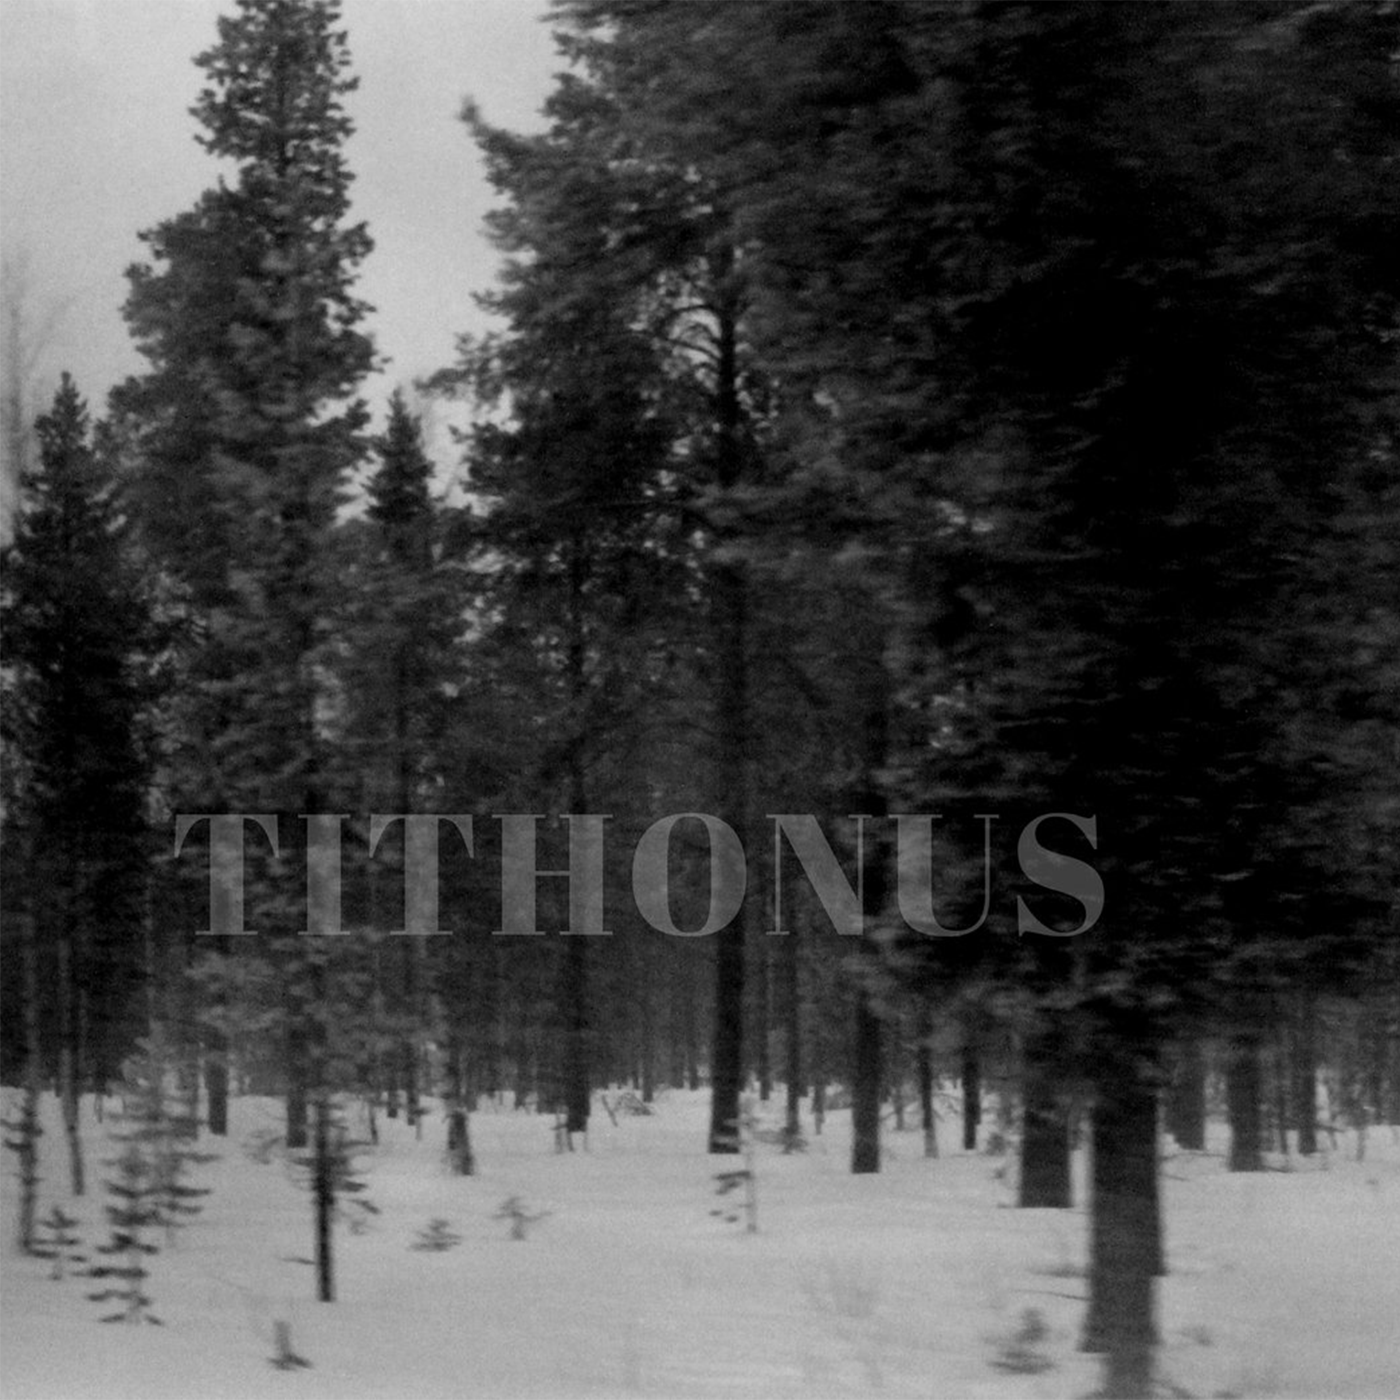 Tithonus - TITHONUS (Full Album)